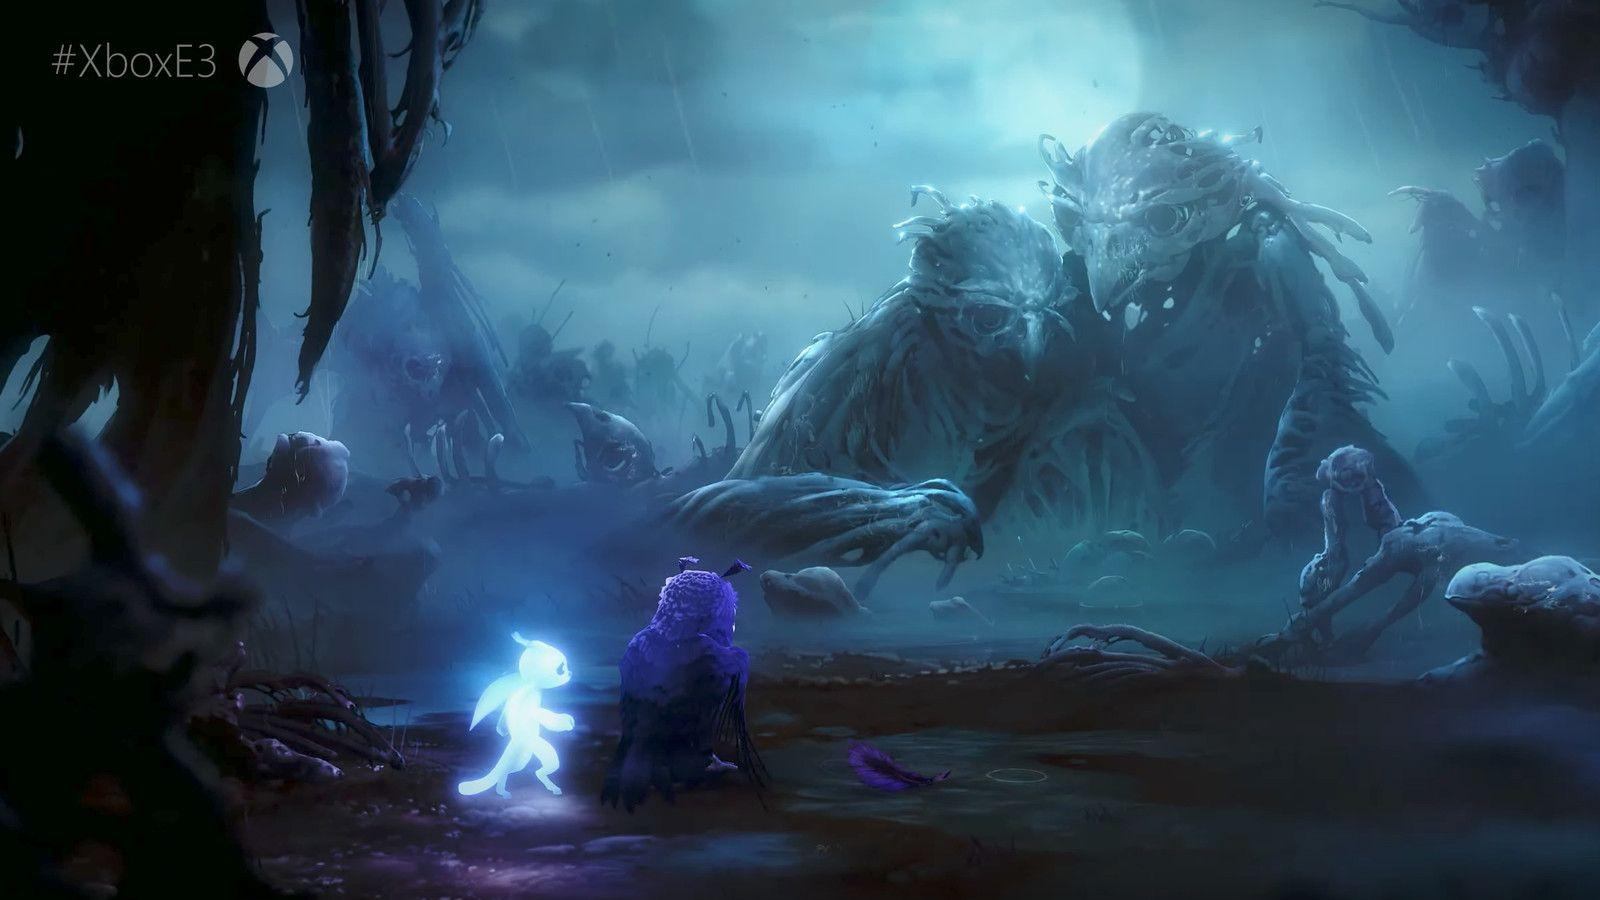 Ori and the Will of the Wisps is the new sequel to the beautiful Ori